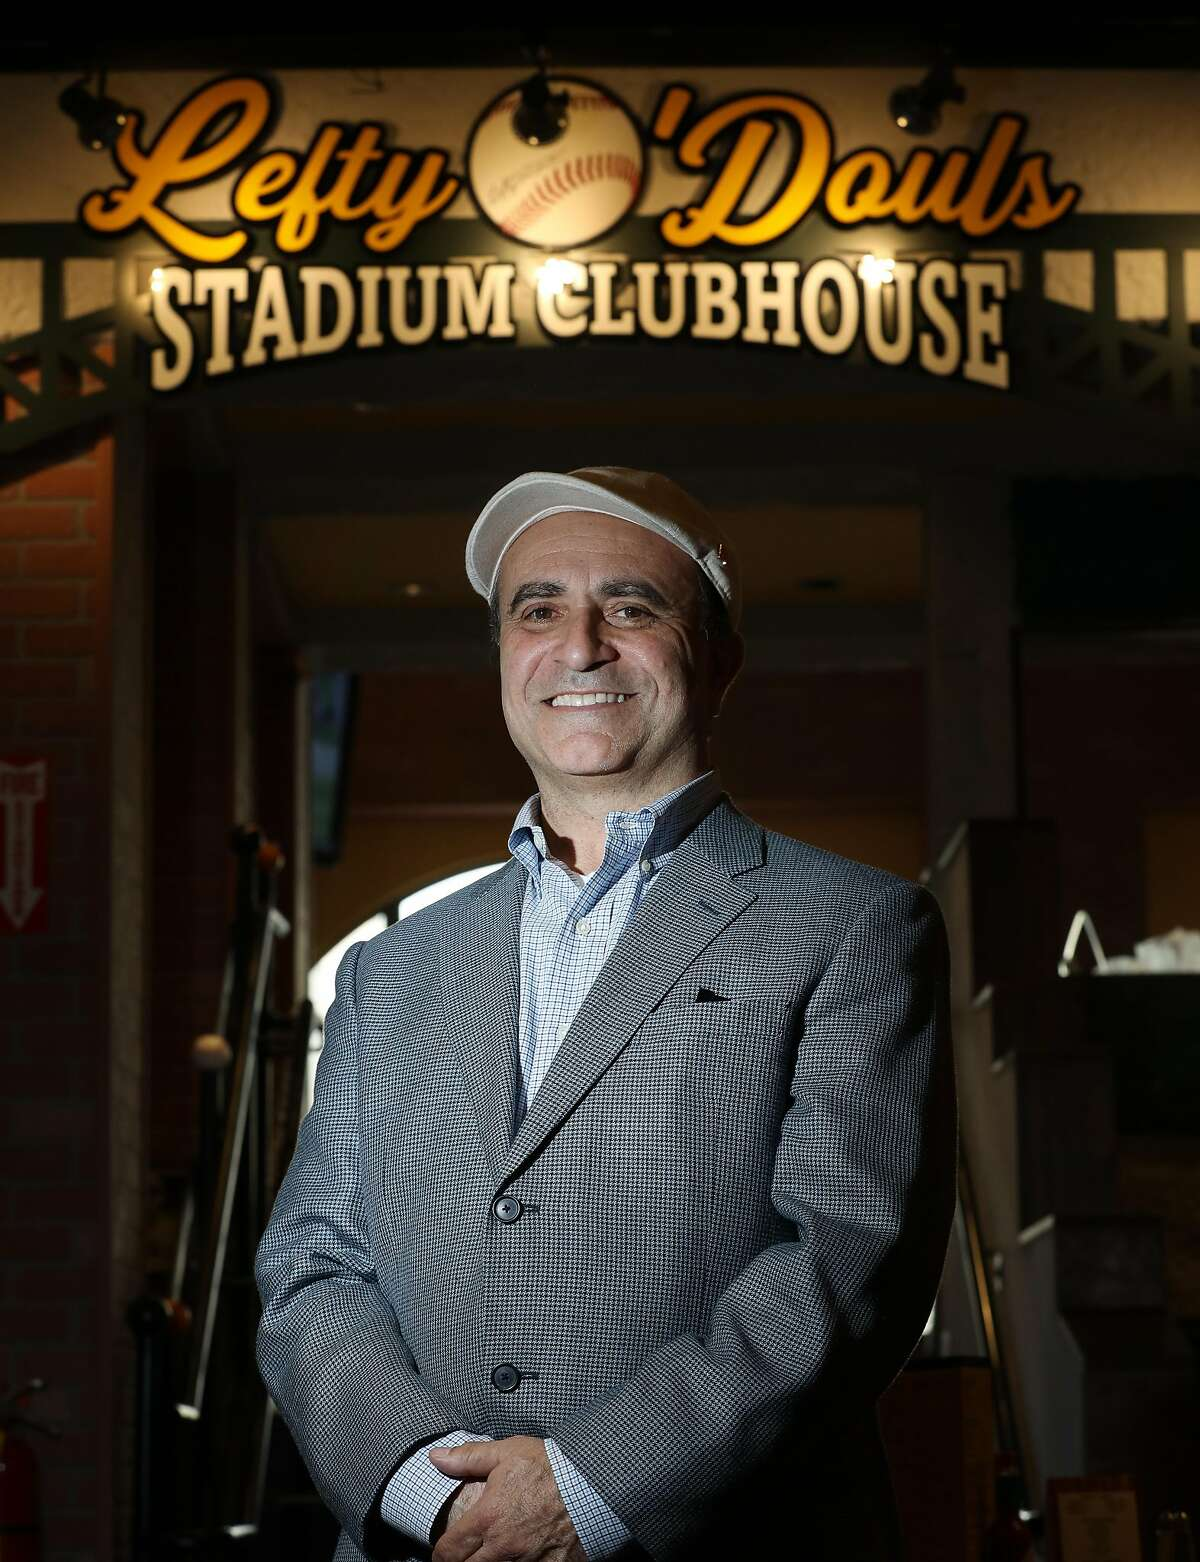 Nick Bovis, owner Lefty's Ballpark Buffet and Cafe, , stands for a portrait at Lefty's Ballpark Buffet and Cafe on Friday, November 16, 2018 in San Francisco, Calif.